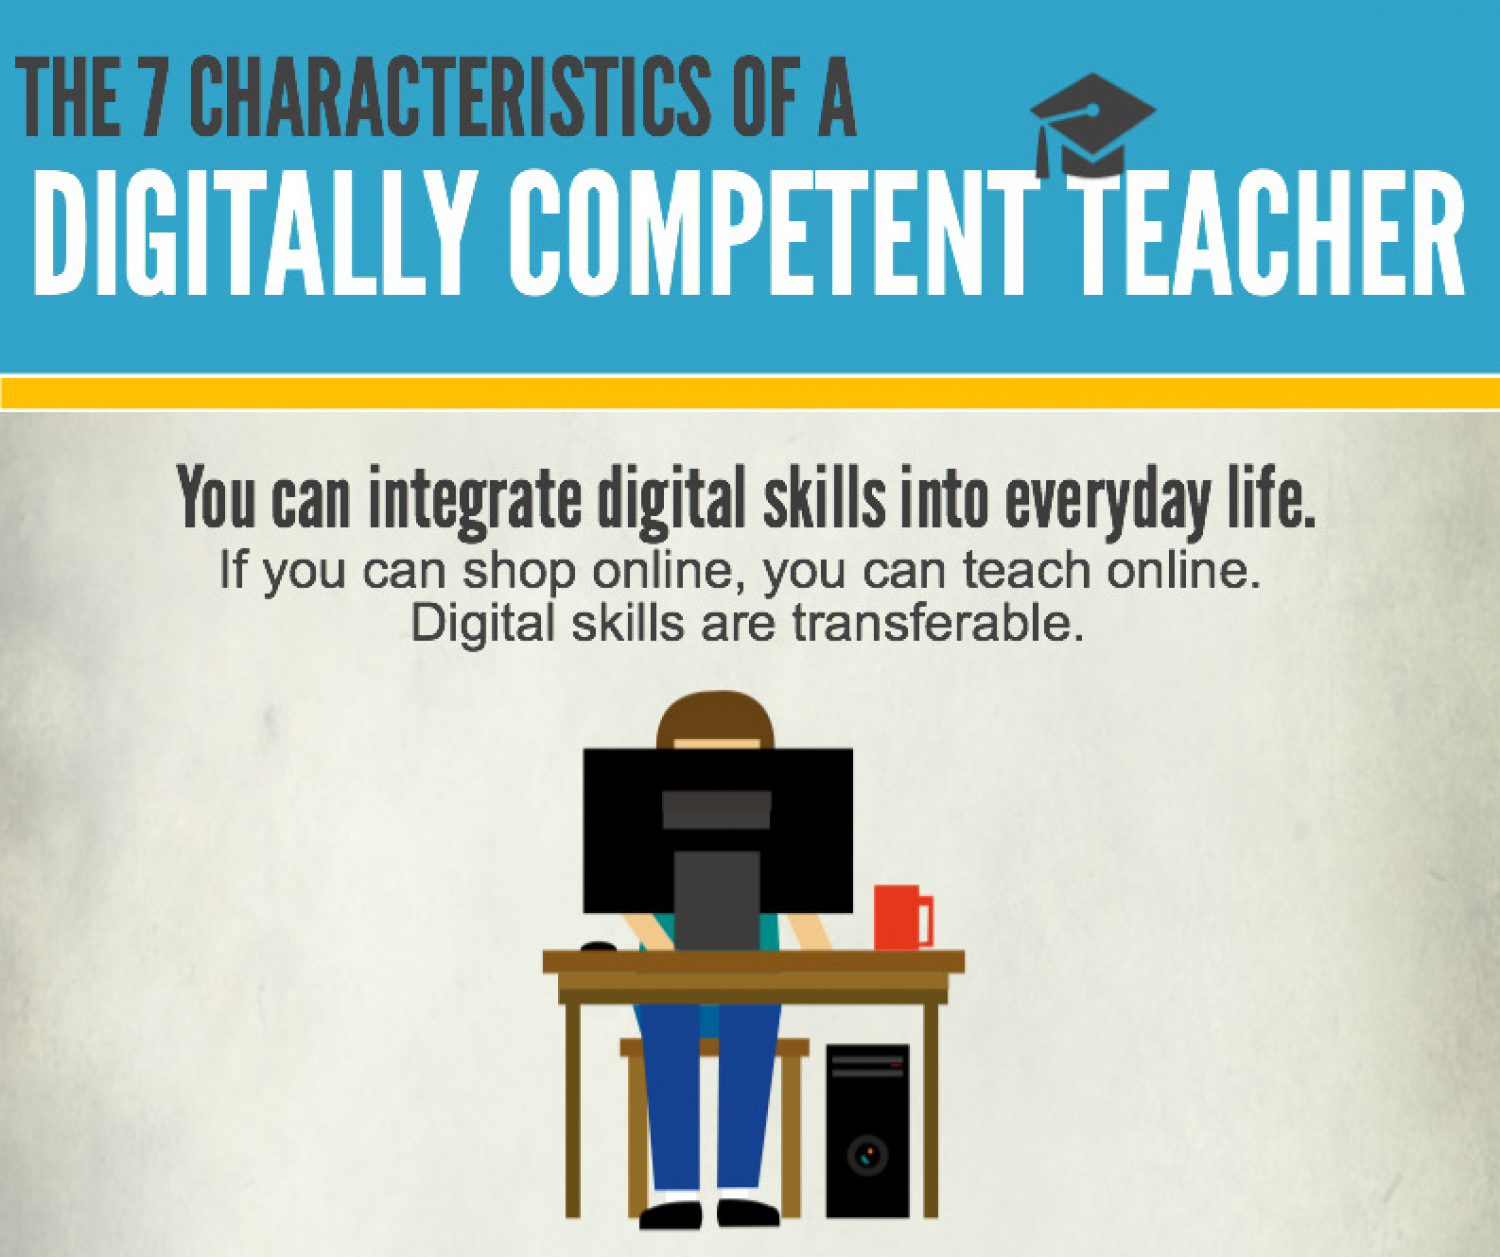 The 7 characteristics of a digitally competent teacher Infographic